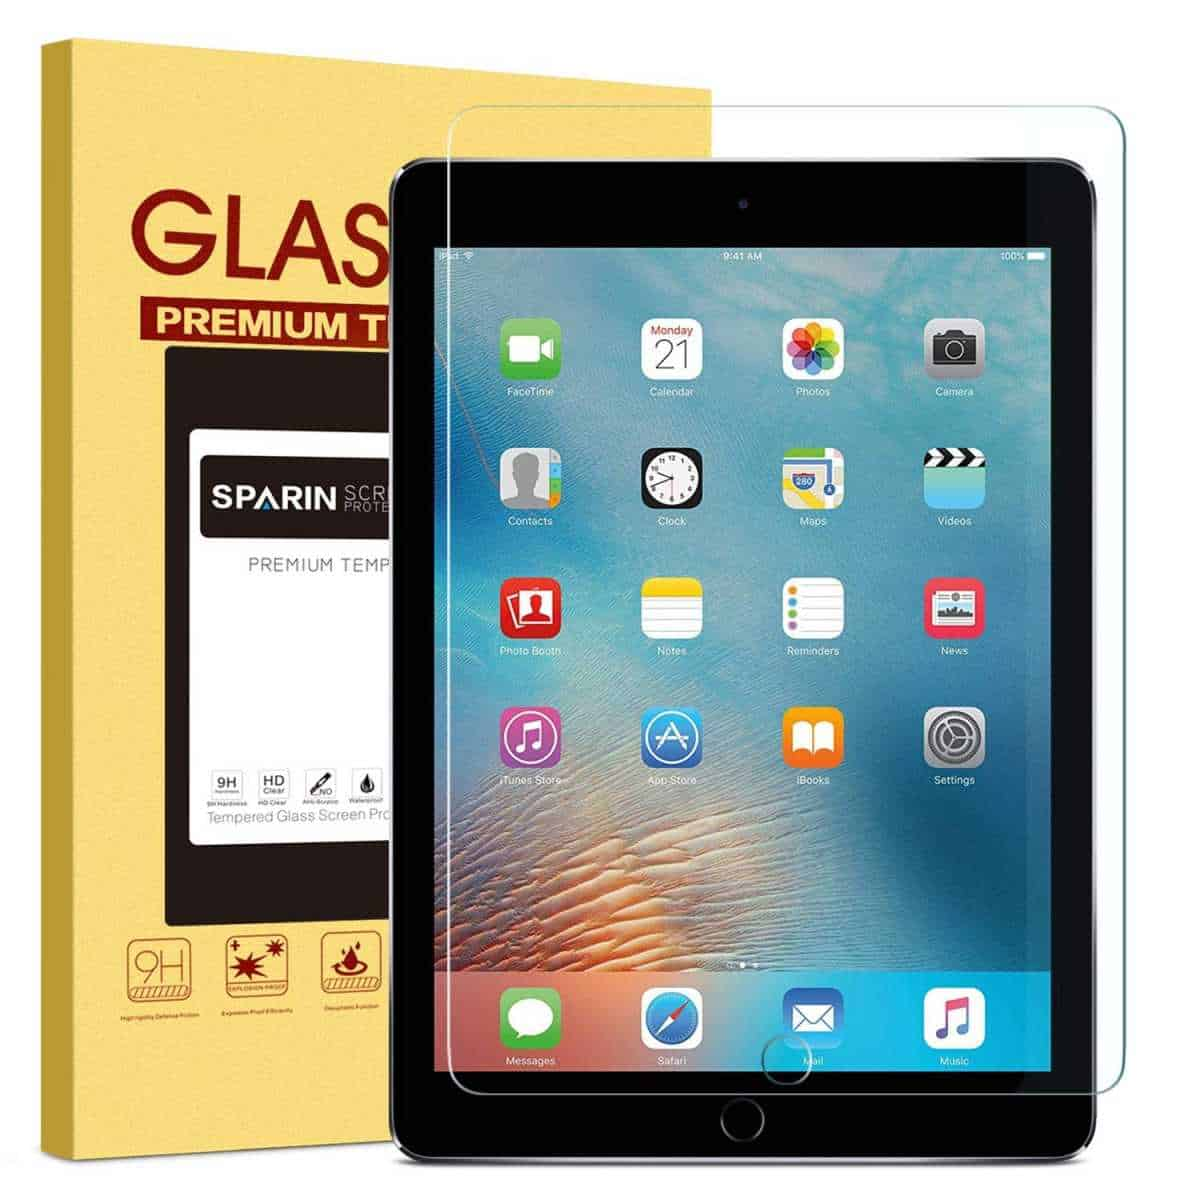 Sparin Tempered Glass Screen Protector | Essential iPad Accessories